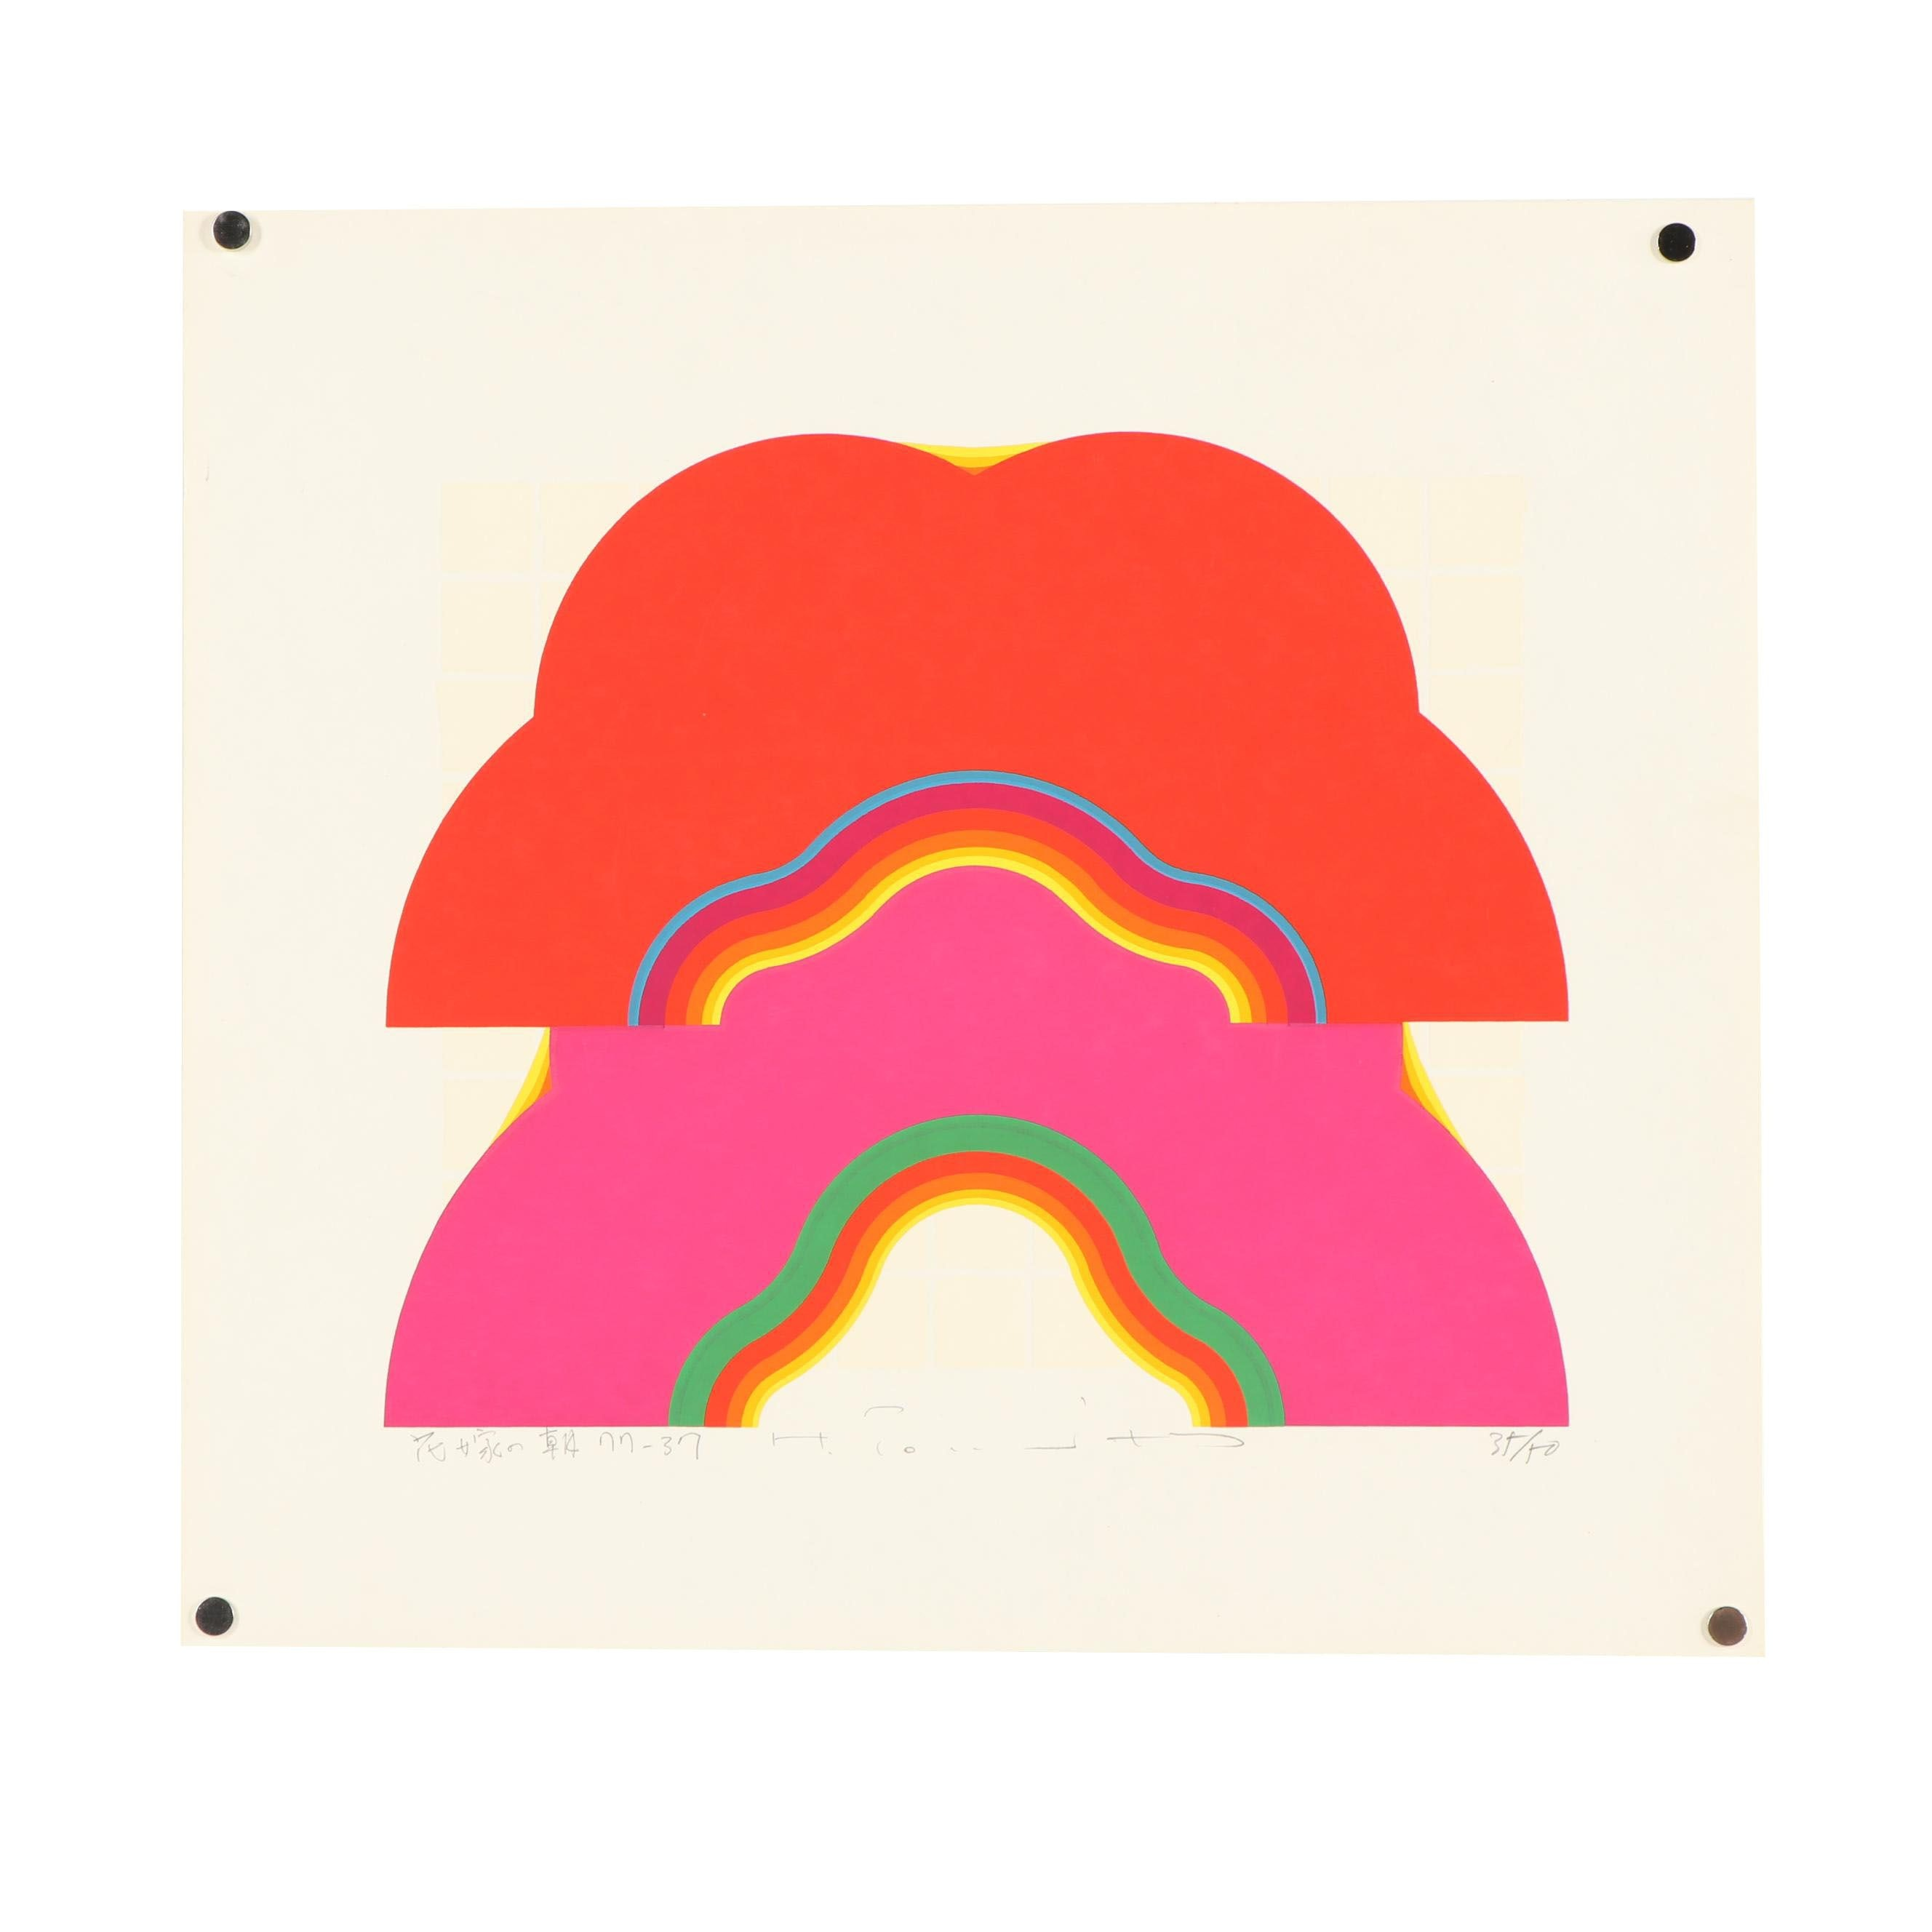 Limited Edition Serigraph of Abstract Rainbow